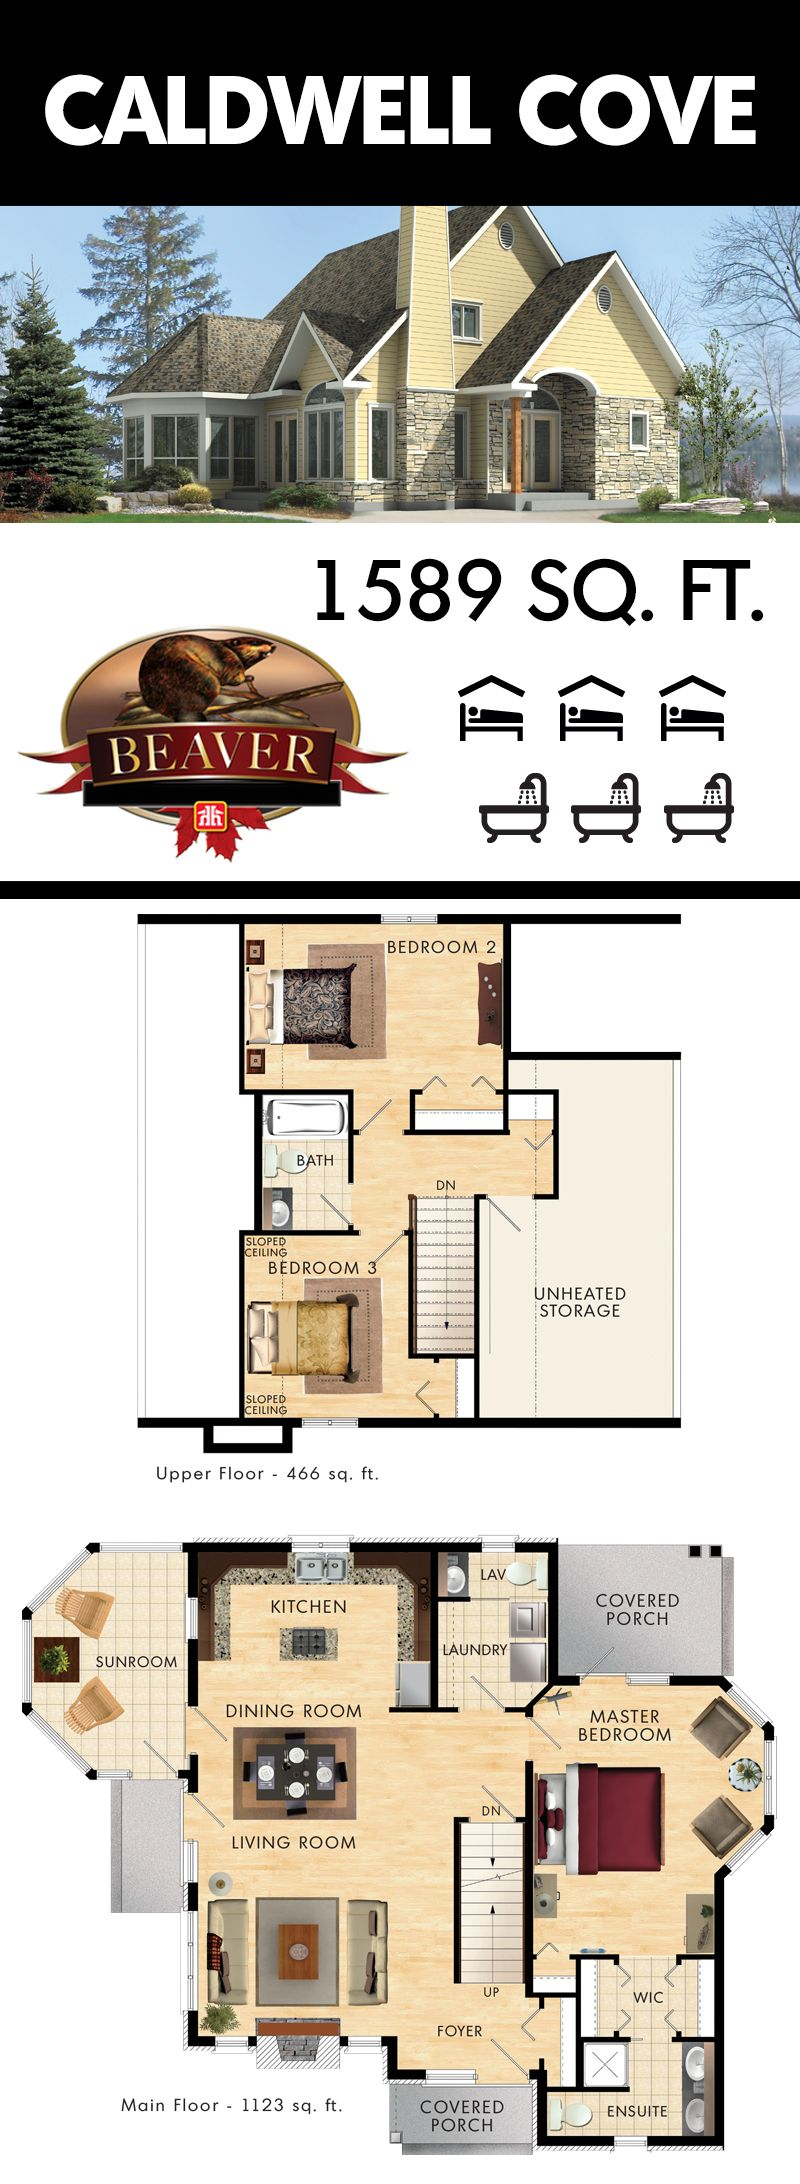 Caldwell Cove Beaver Homes And Cottages Dream House Plans House Blueprints